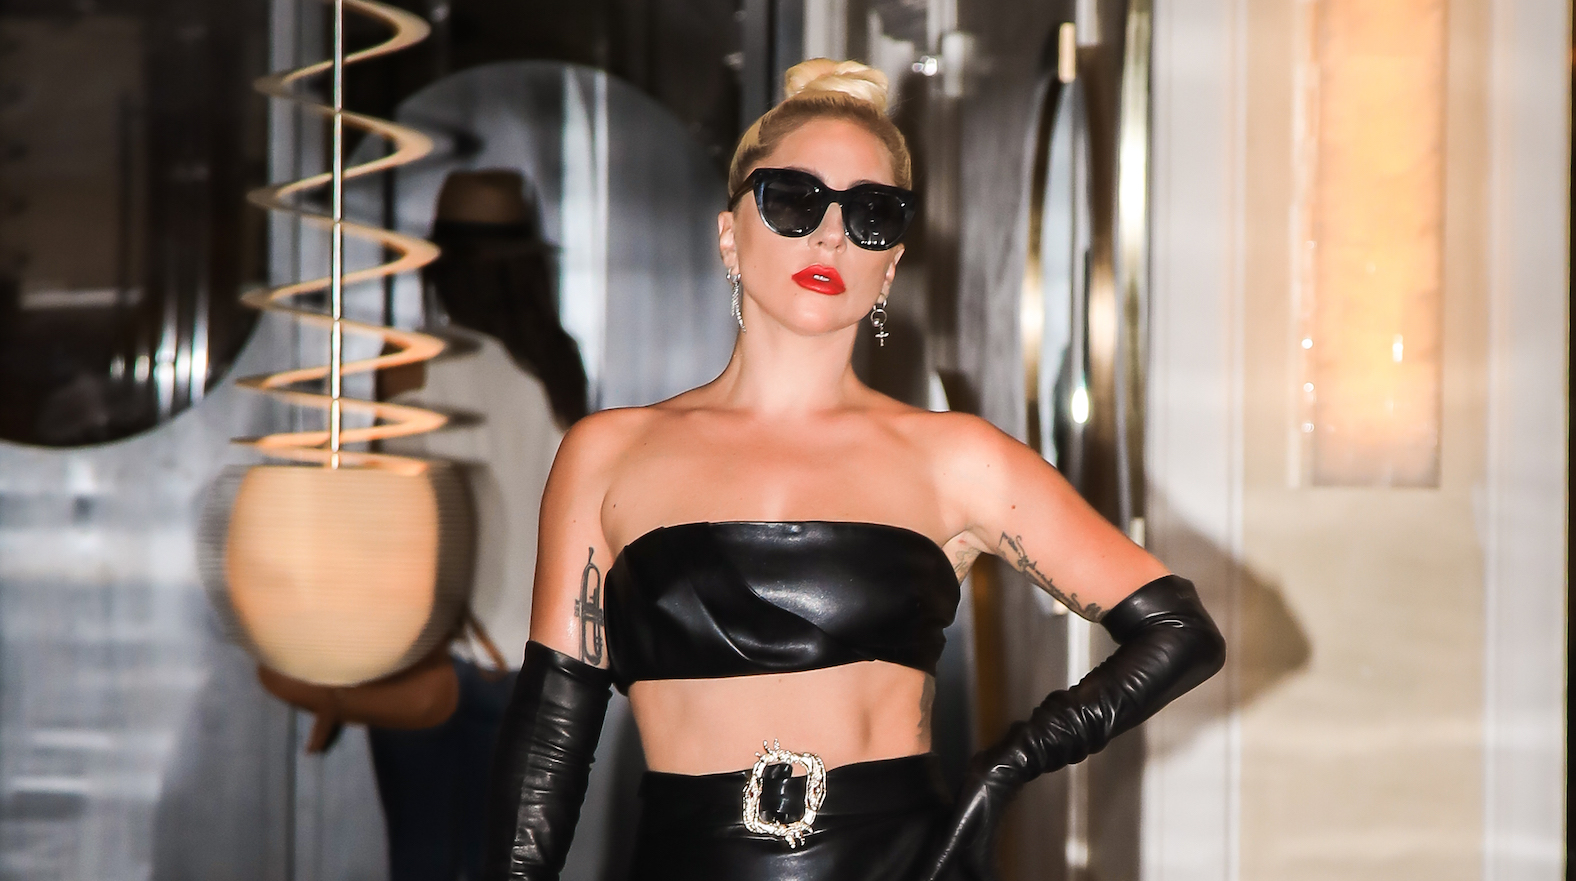 Lady Gaga Shows Abs in Leather Crop Top and Skirt in NYC